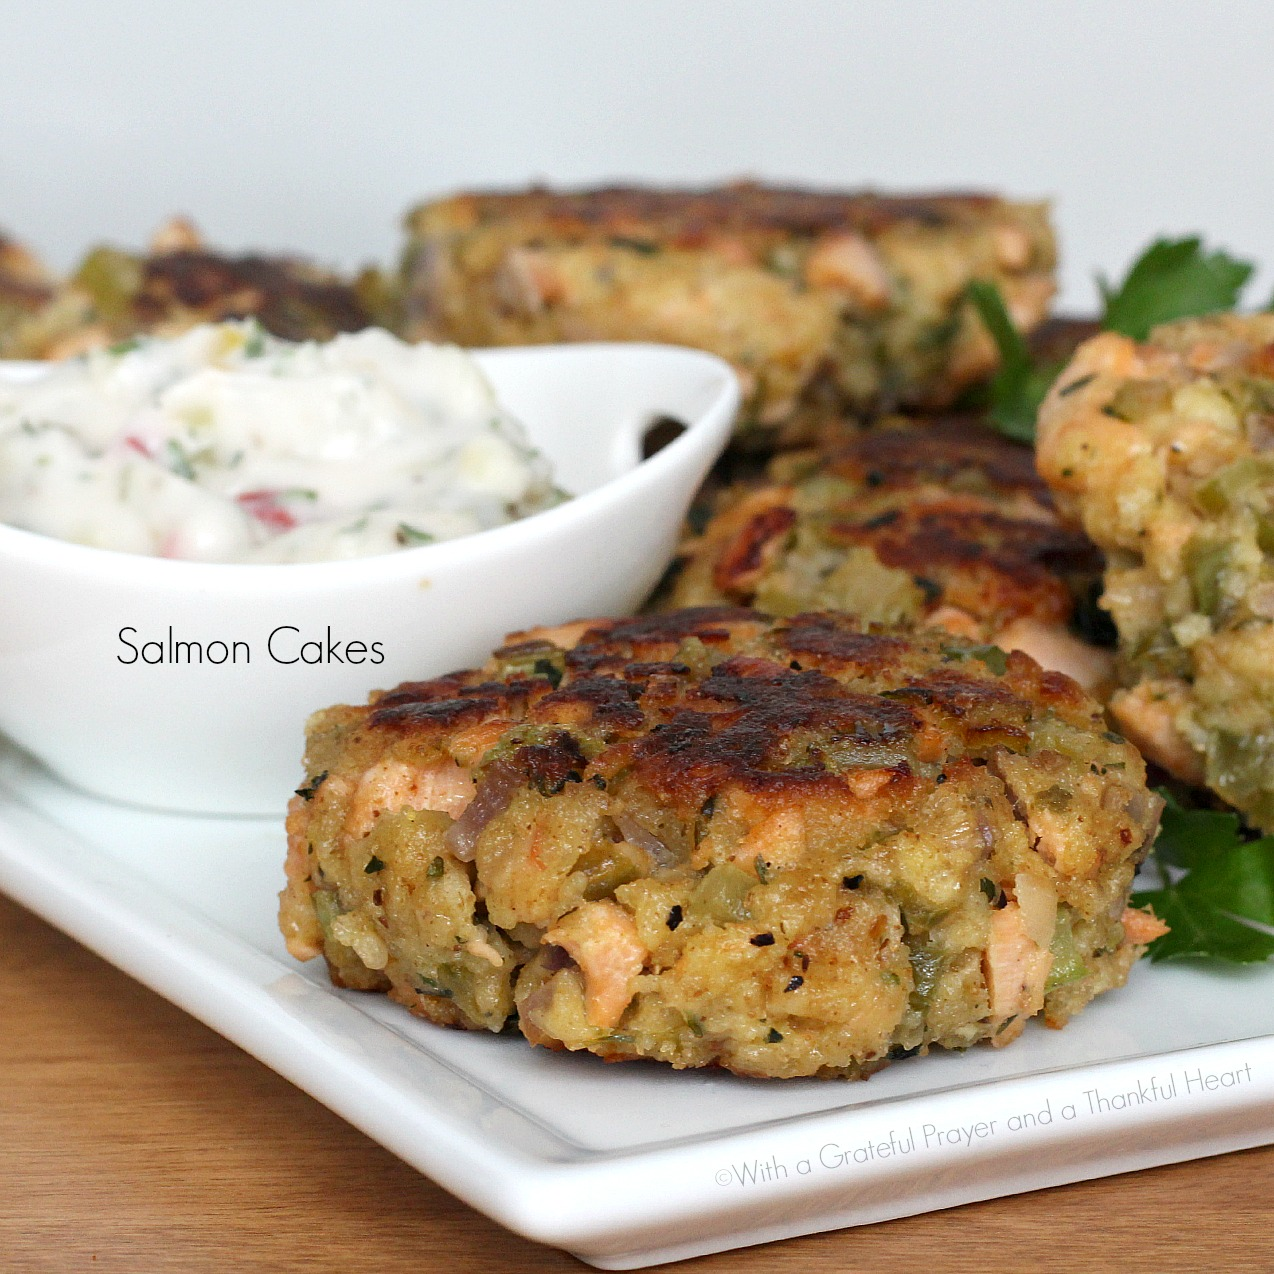 Salmon Cakes: With A Grateful Prayer And A Thankful Heart: Salmon Cakes